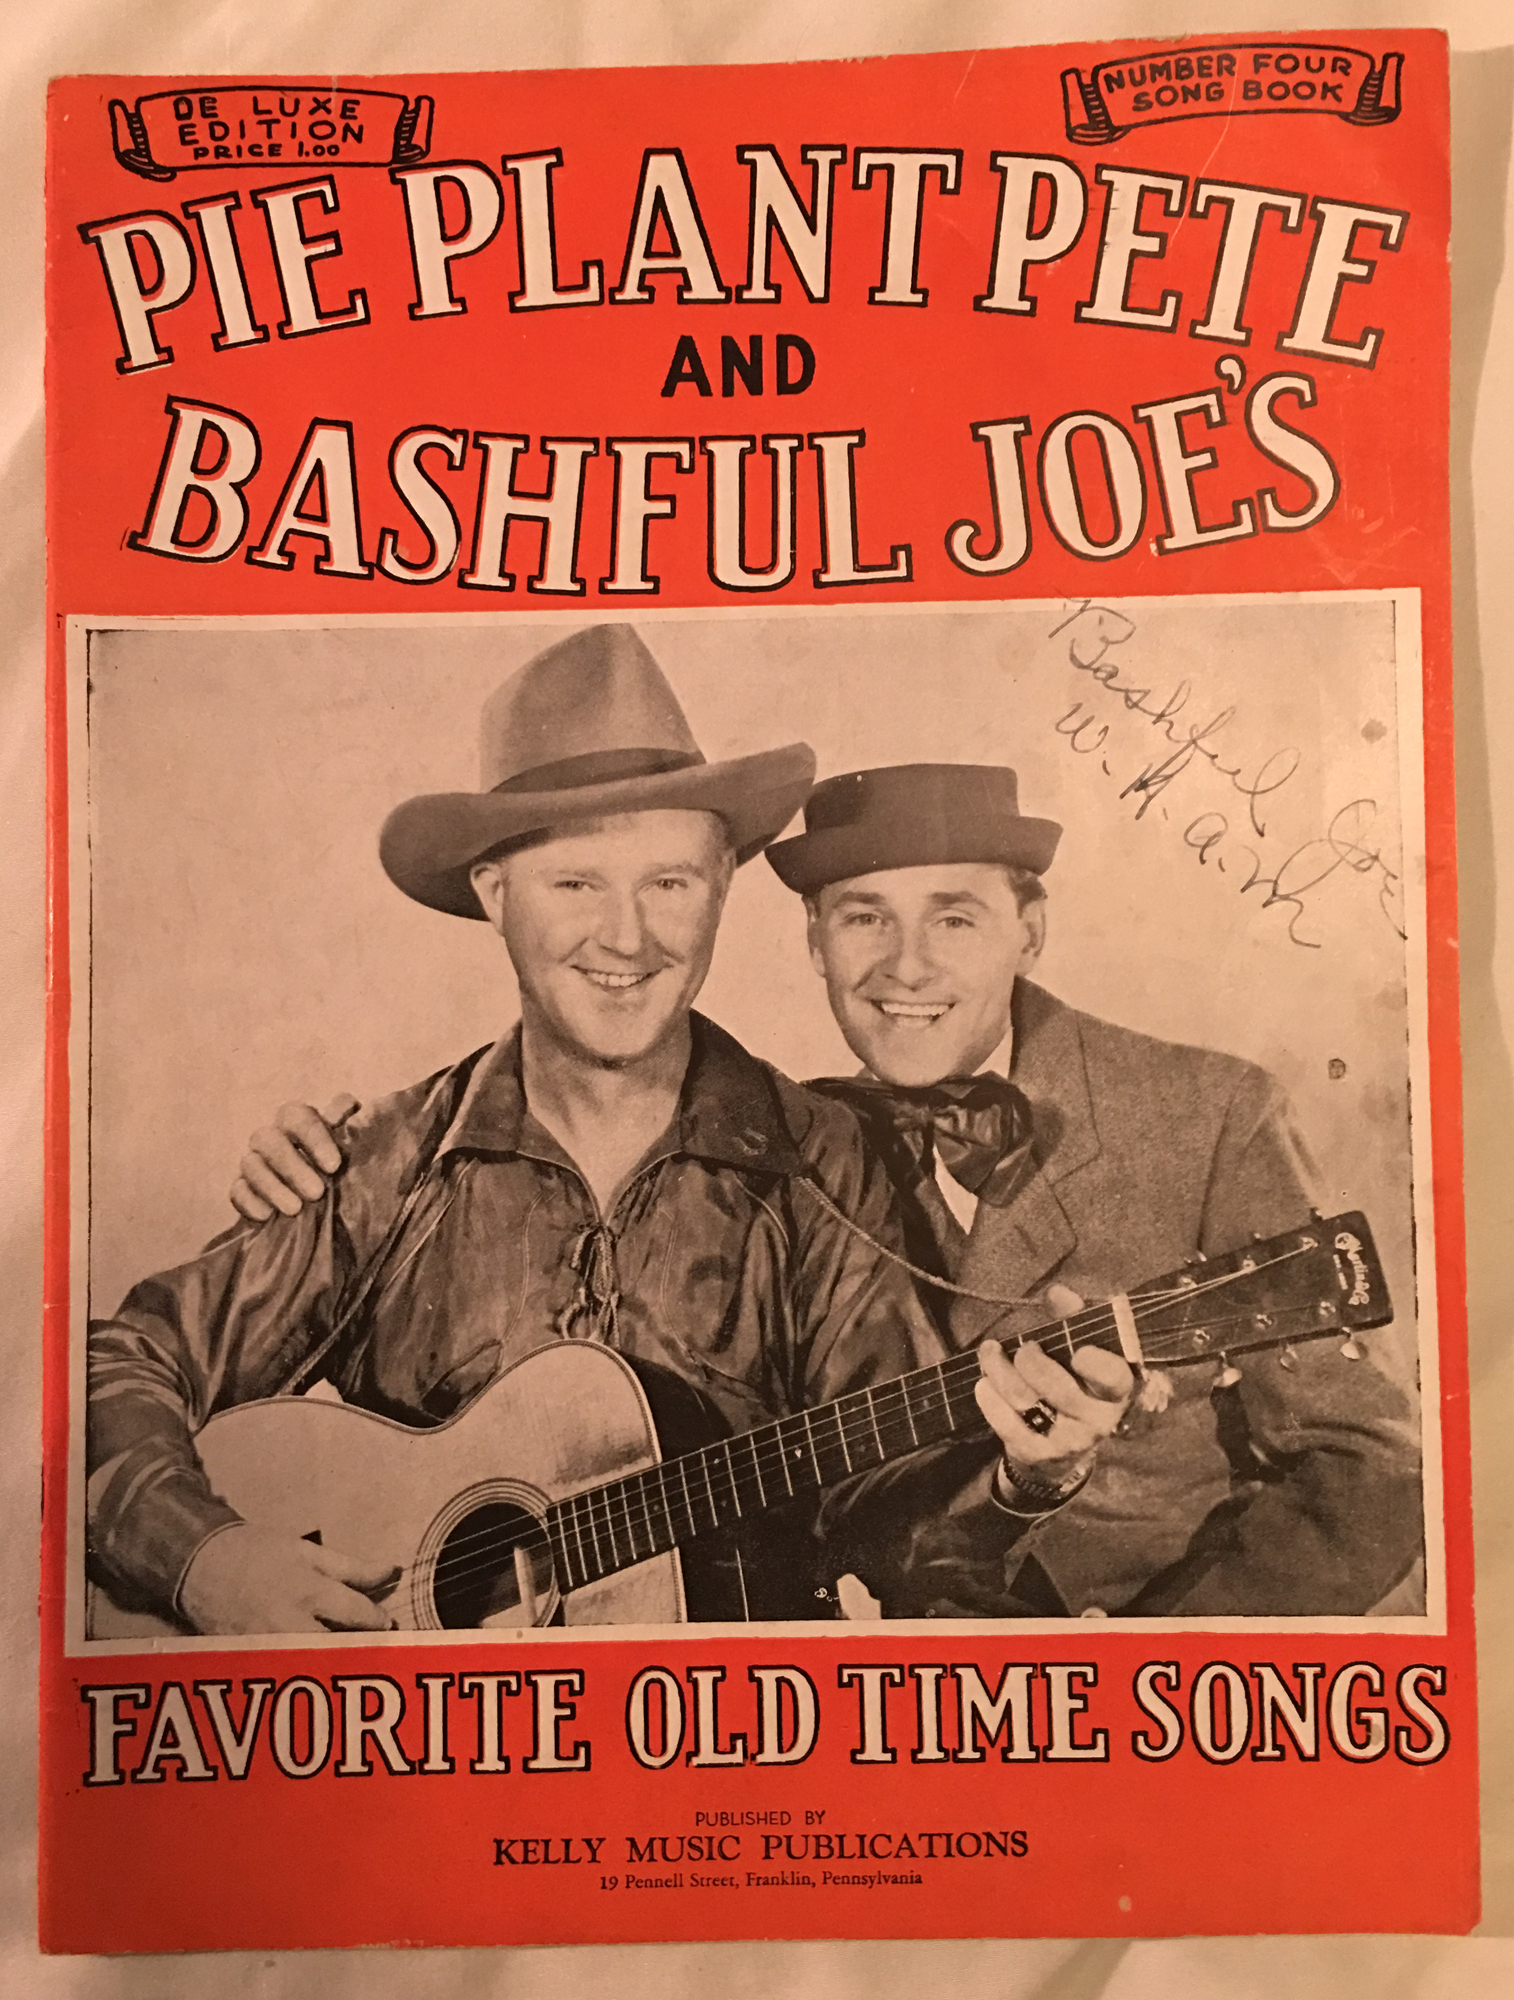 Image for Pie Plant Pete and Bashful Joe's Favorite Old Time Songs : Number Four Song Book